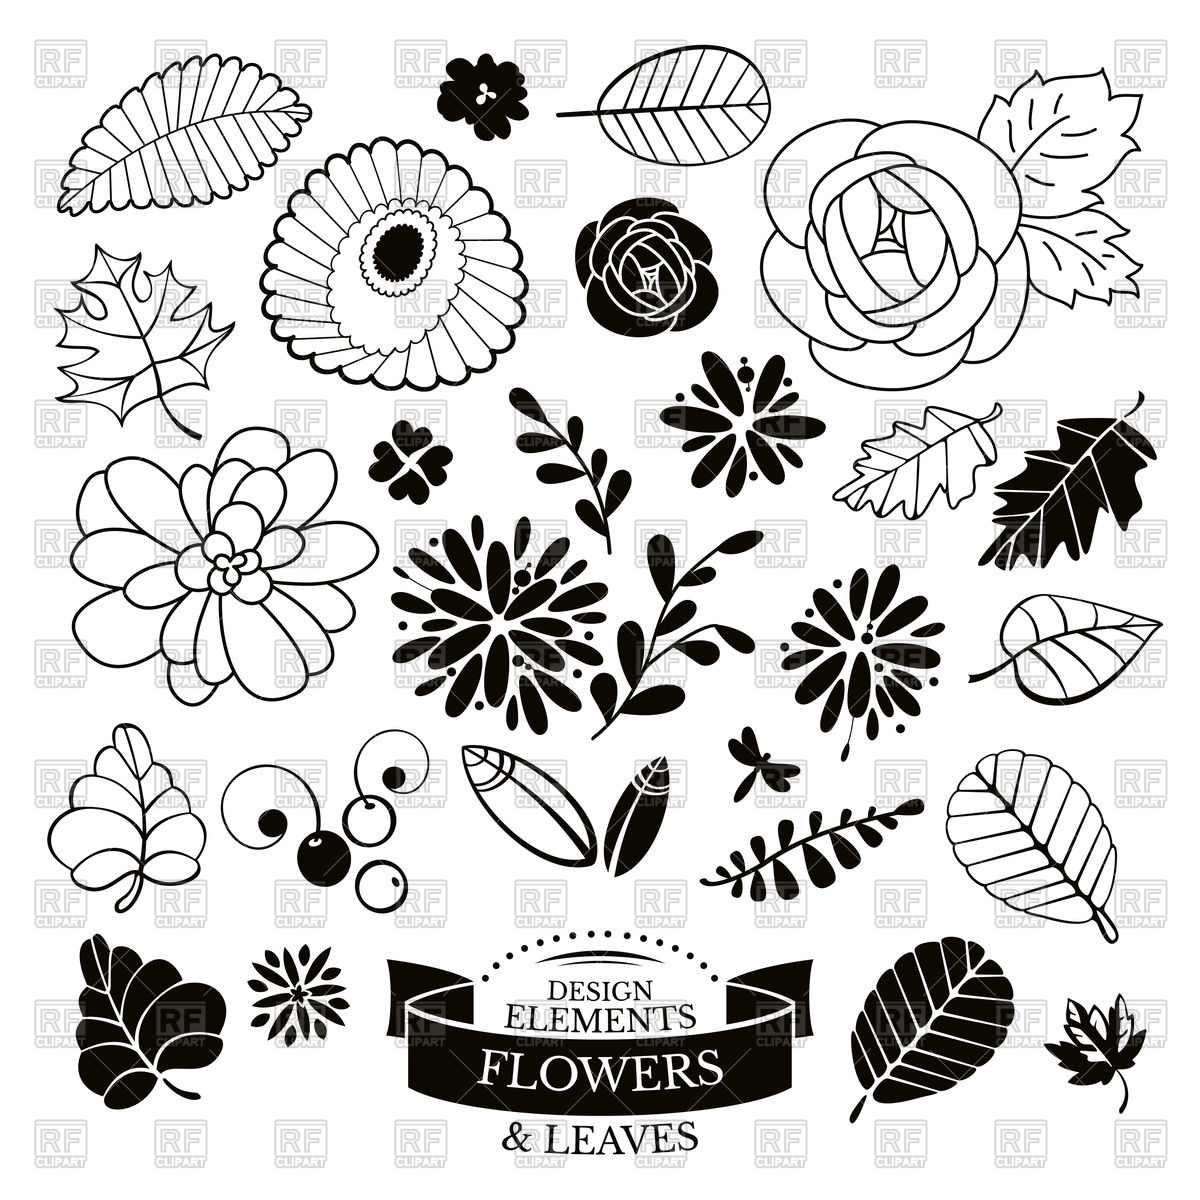 1200x1200 Outline Of Flowers And Leaves Vector Image Vector Artwork Of